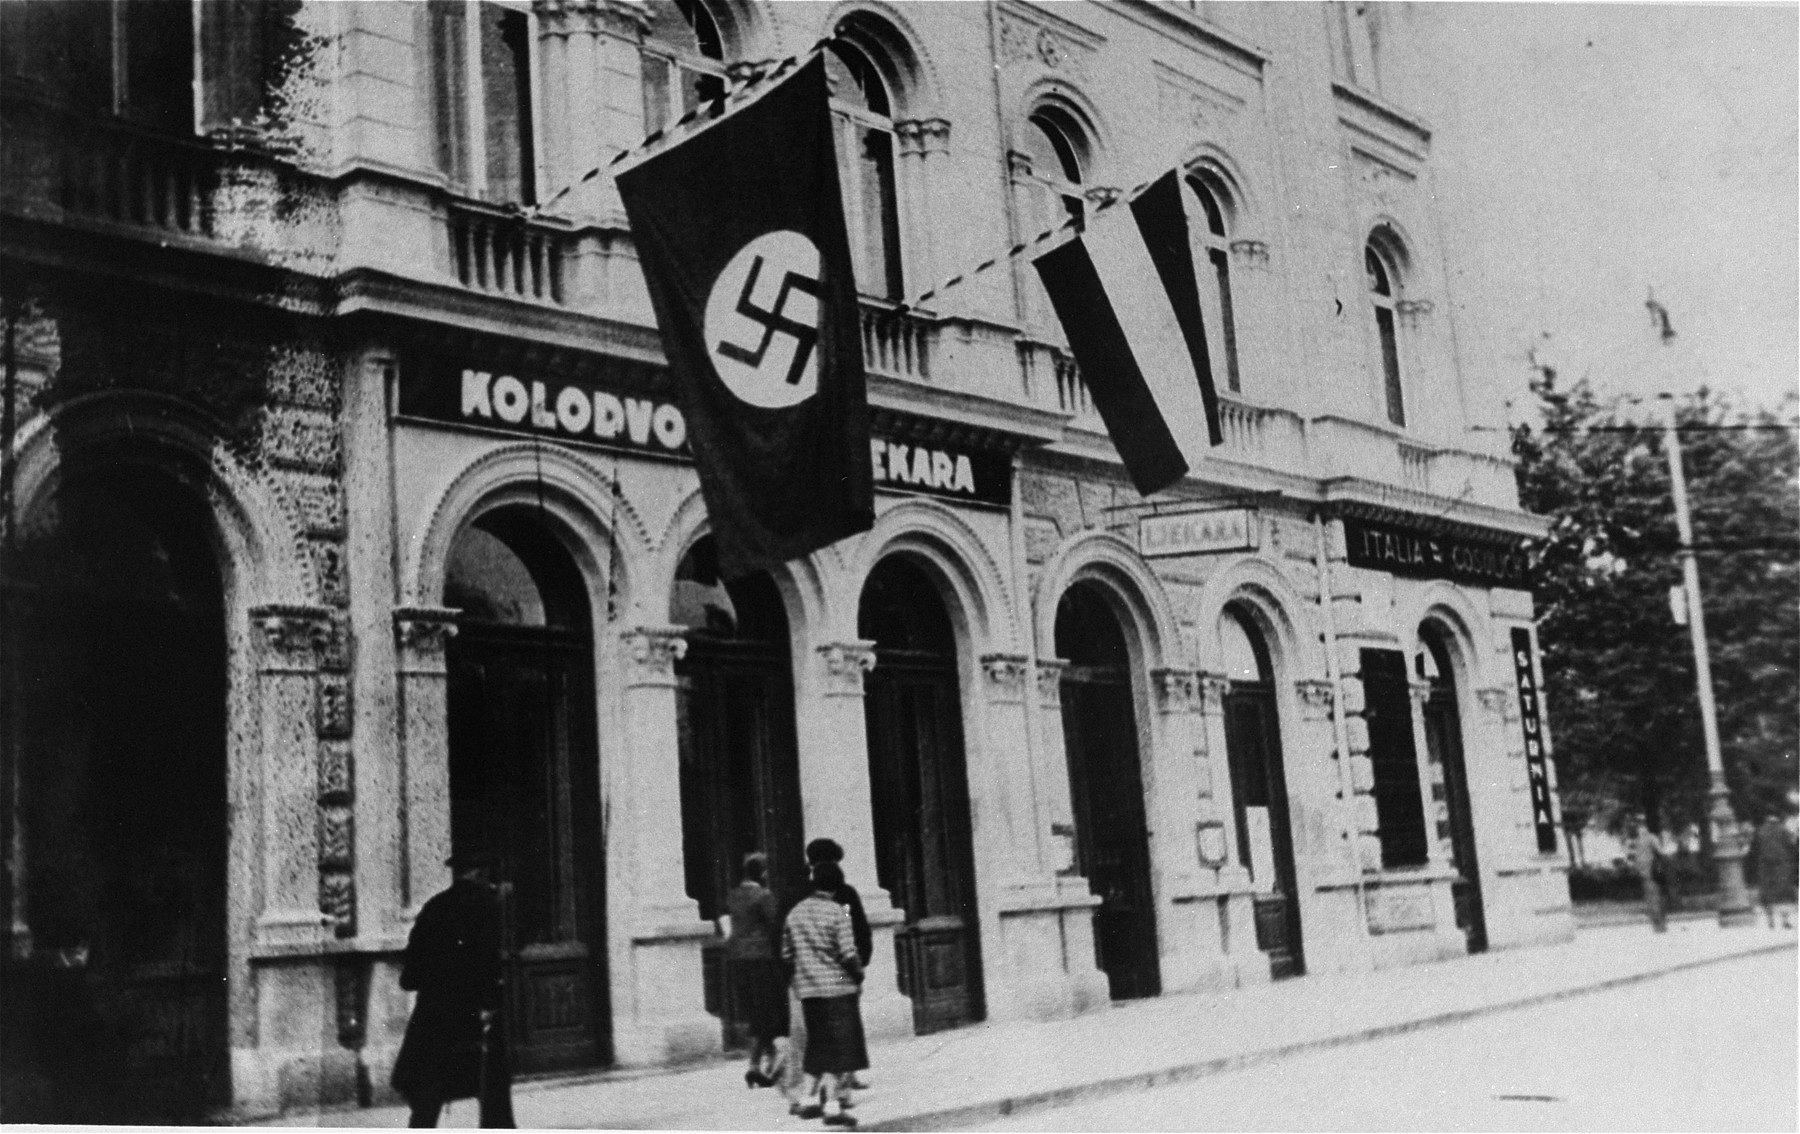 A Nazi flag flies over the German consulate in Zagreb.